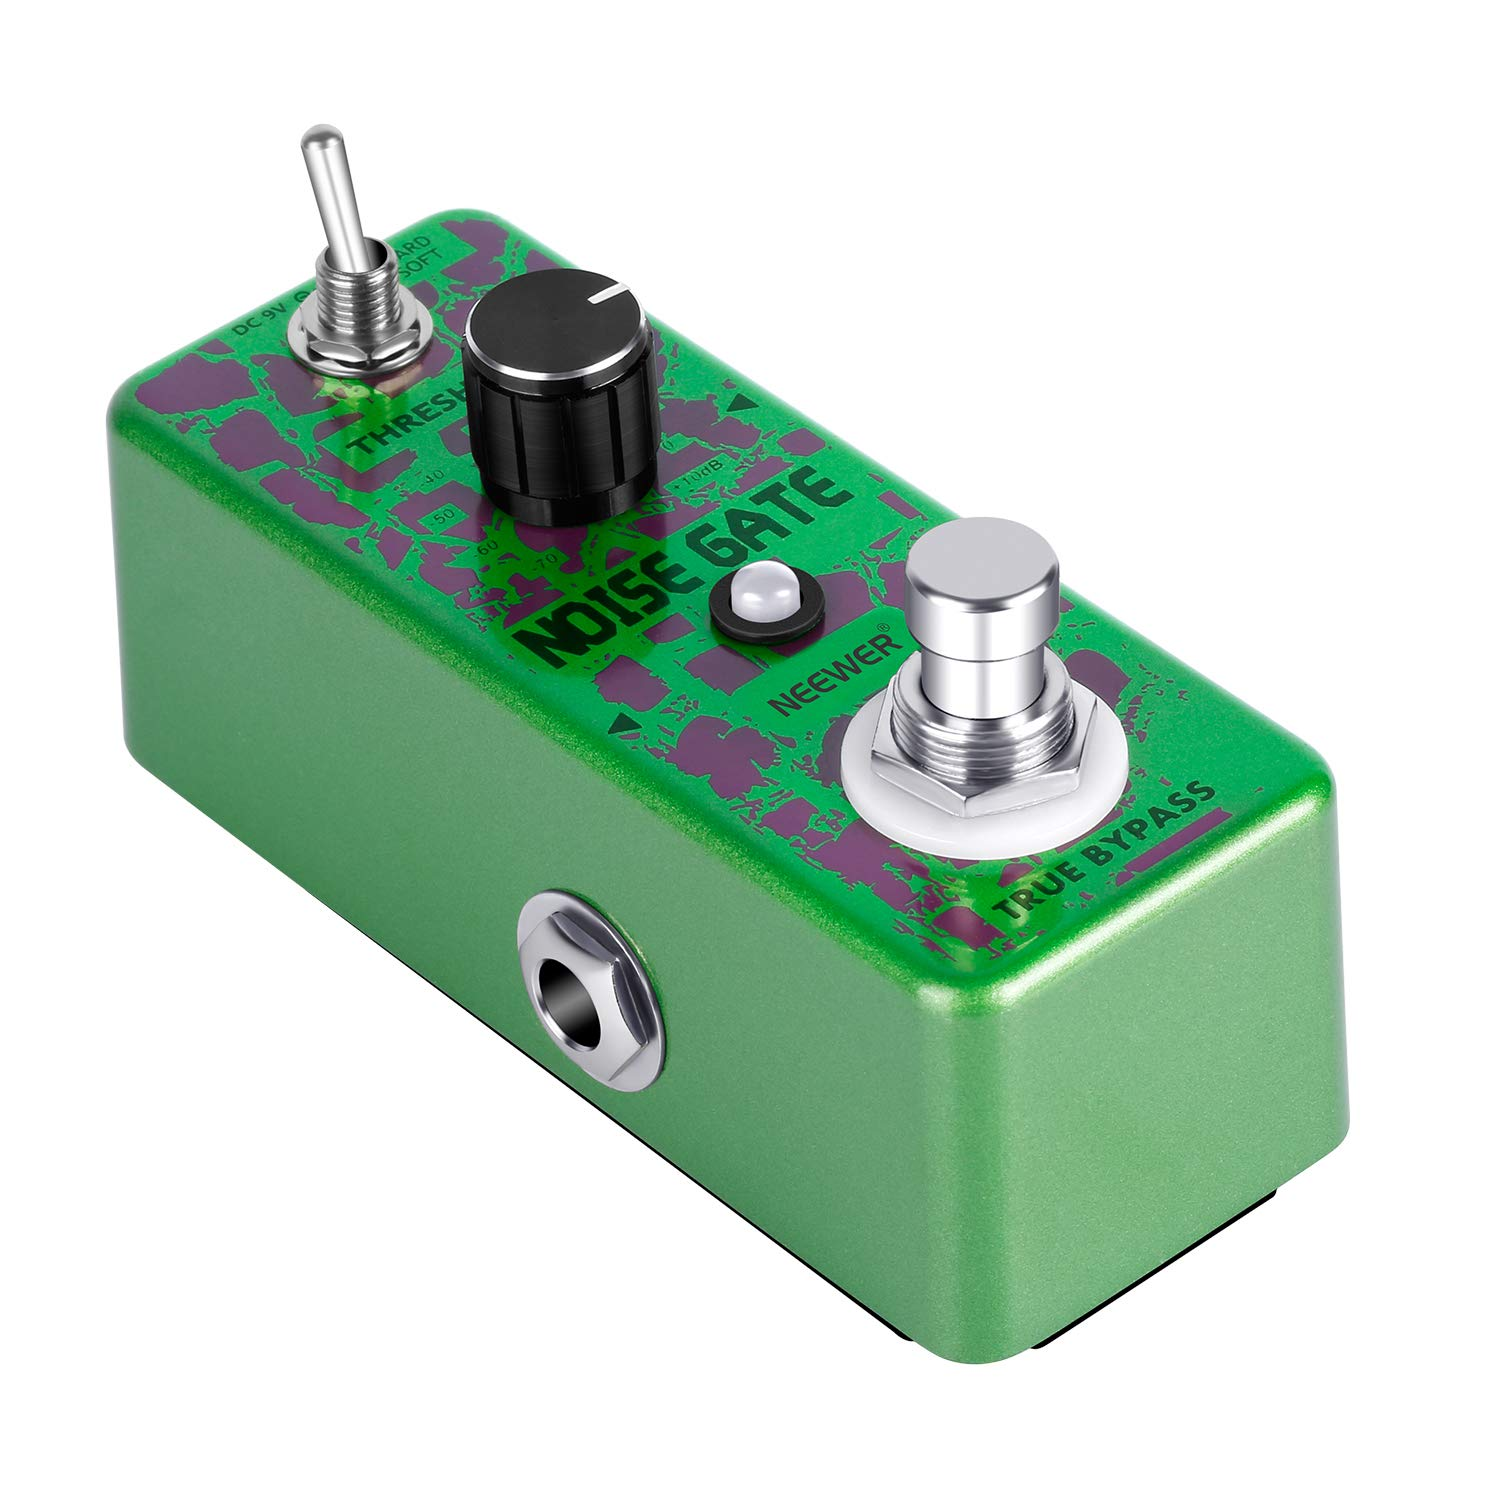 Neewer Noise Killer Guitar Noise Gate Suppressor Effect Pedal with 2 Working Models for Guitar Playing and Guitar Performance in Live Show or Recording Studio by Neewer